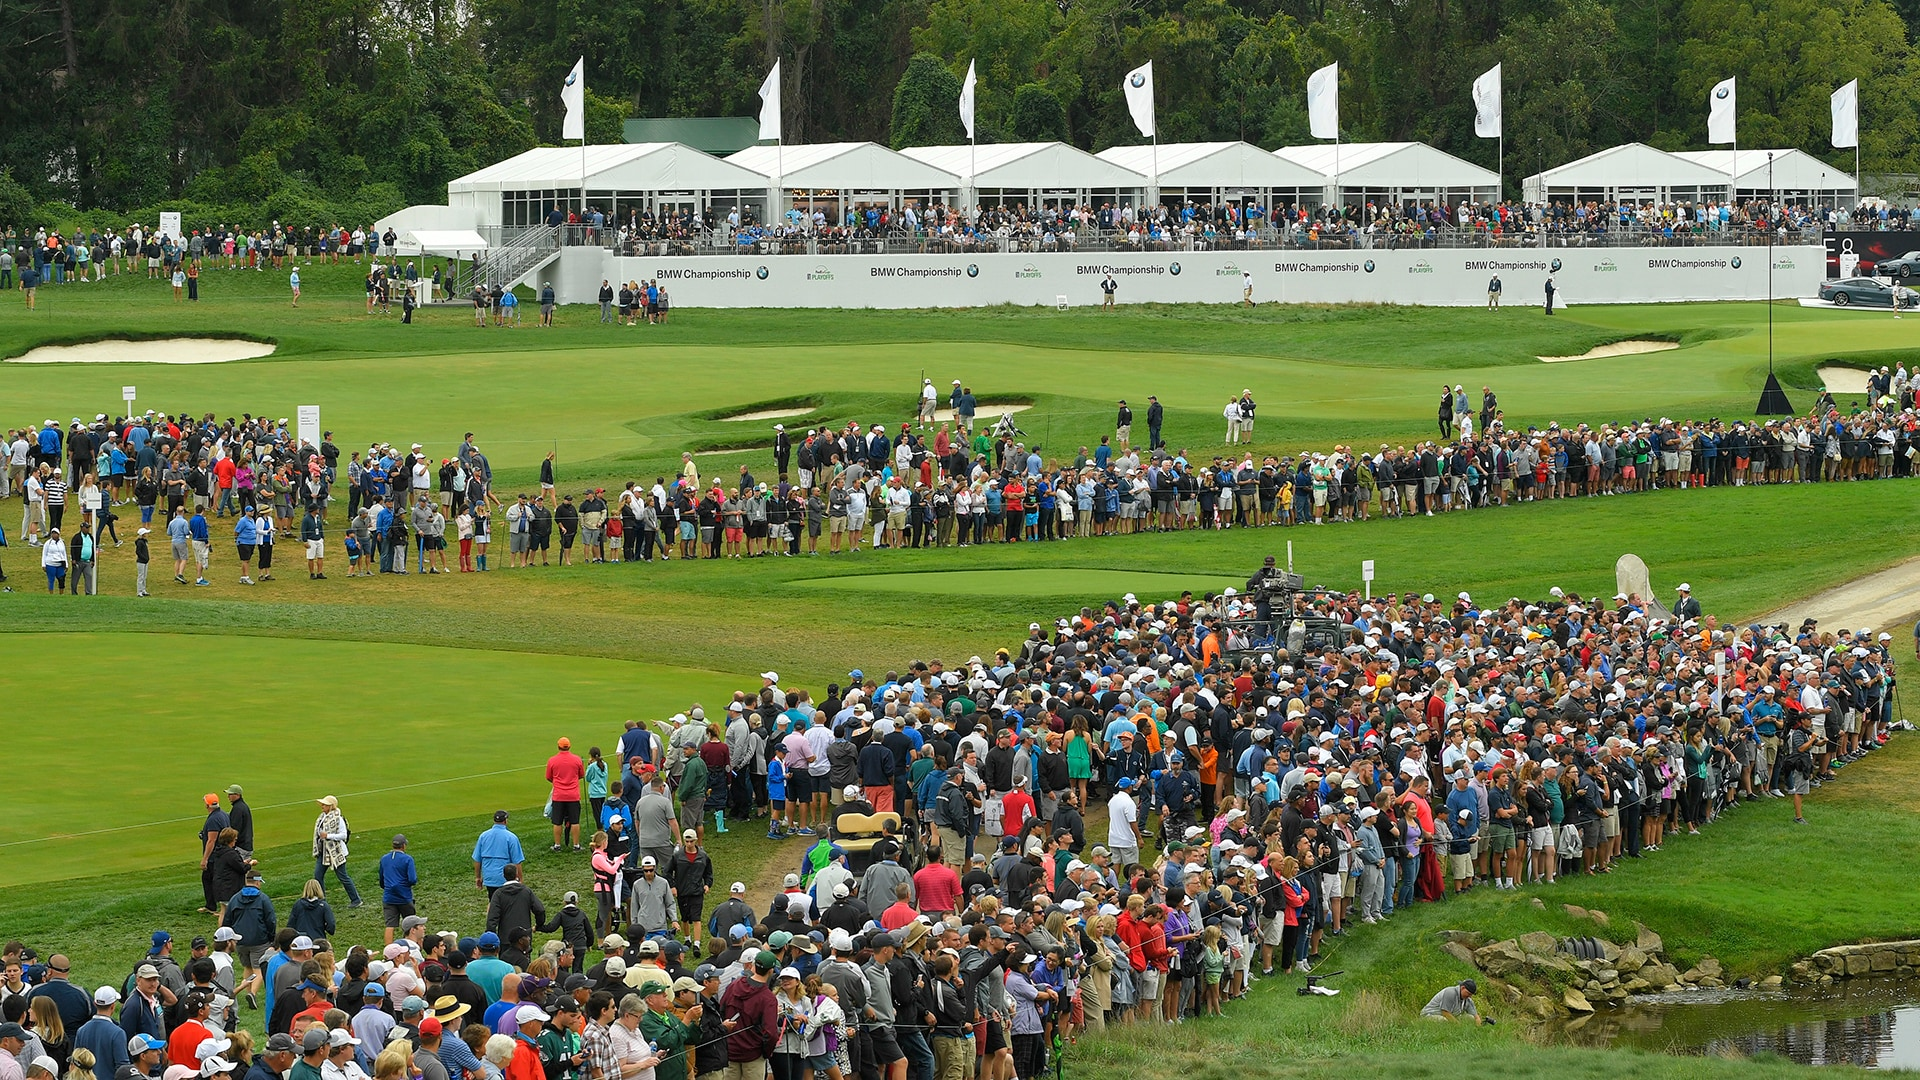 More Rain Delays Sunday Tee Times At The Bmw Championship